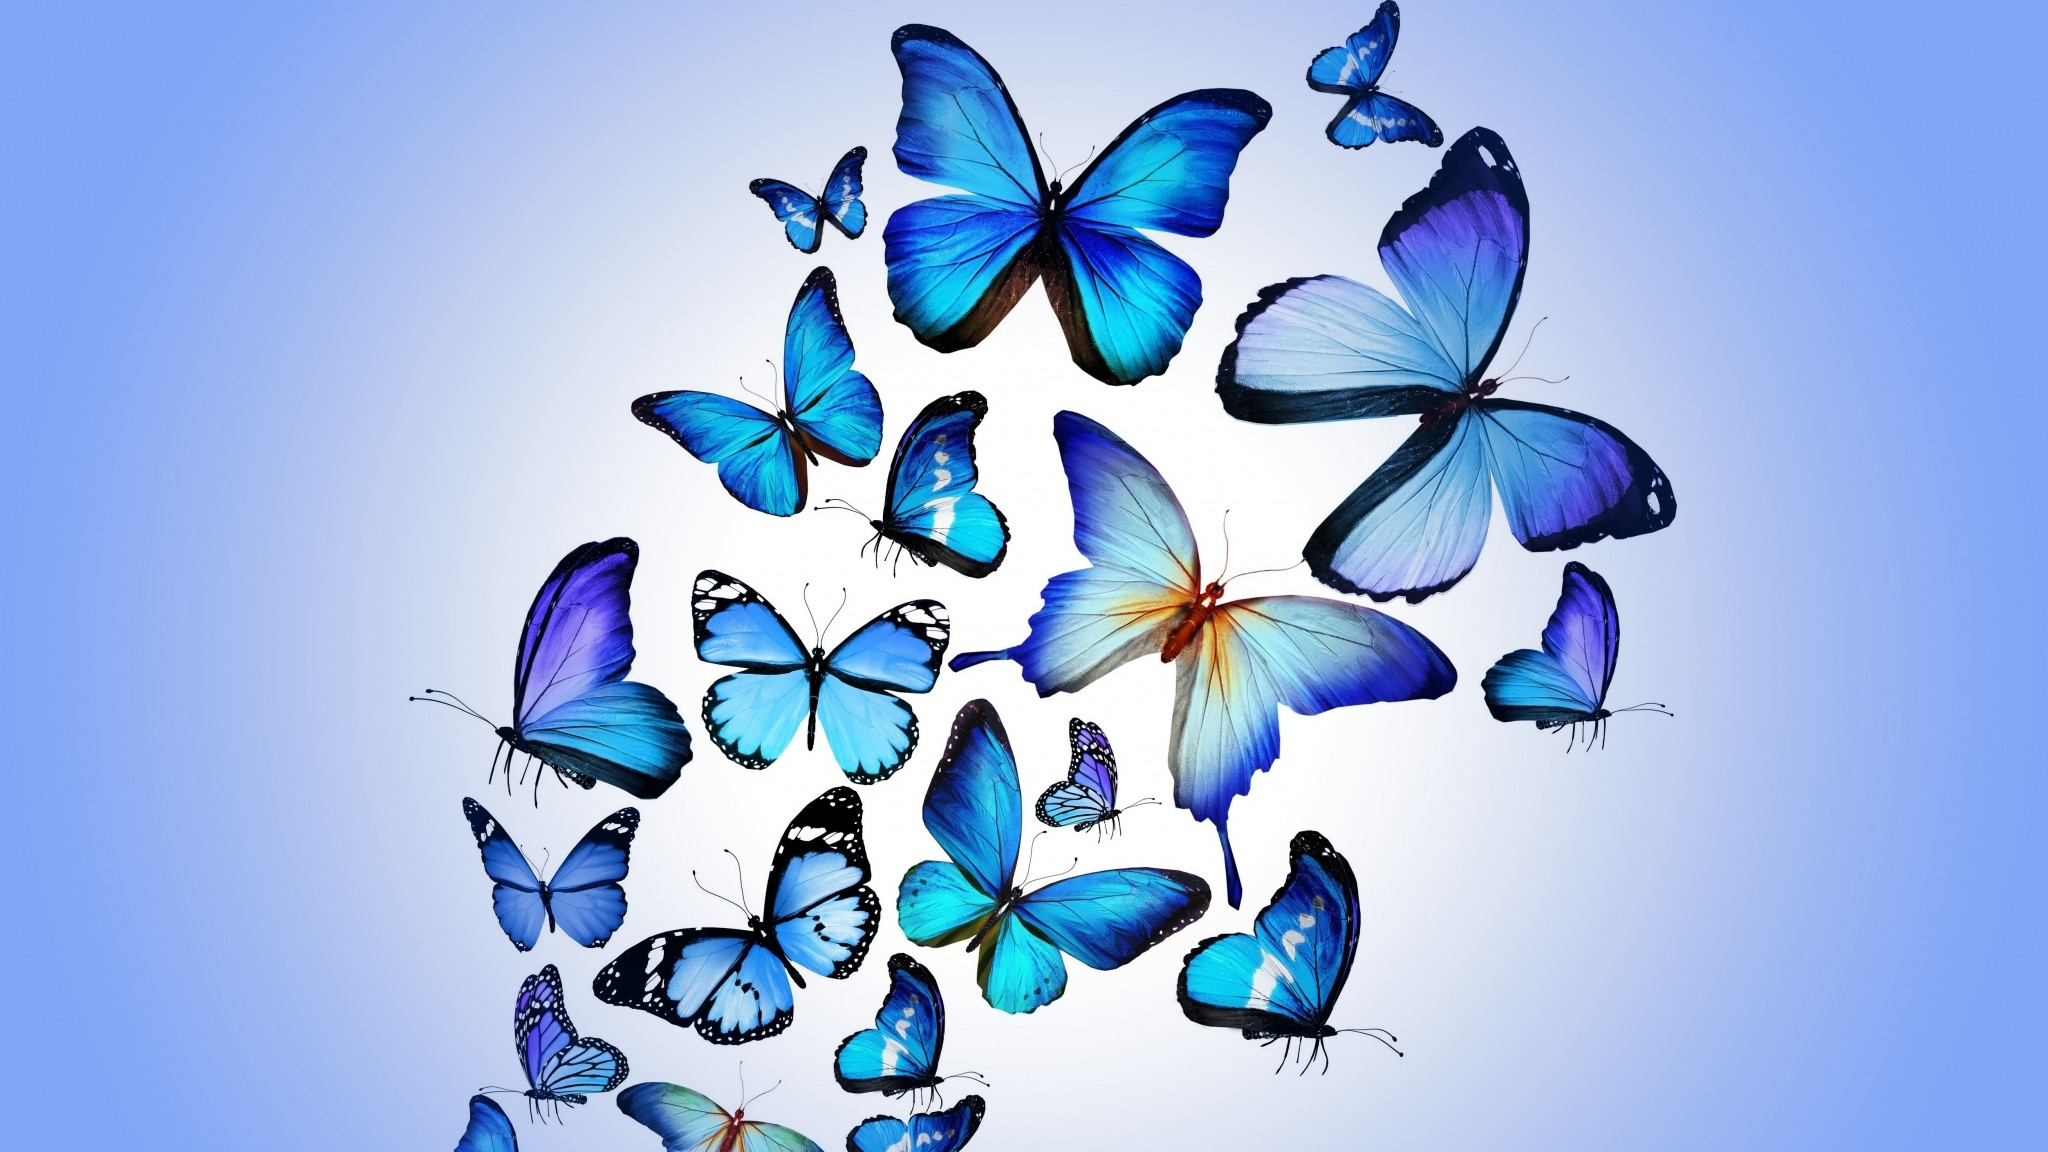 Download Free High Quality Butterfly Wallpaper The Quotes Land 1920×1200  Butterfly Picture | Adorable Wallpapers | Desktop | Pinterest | Butterfly  wallpaper …